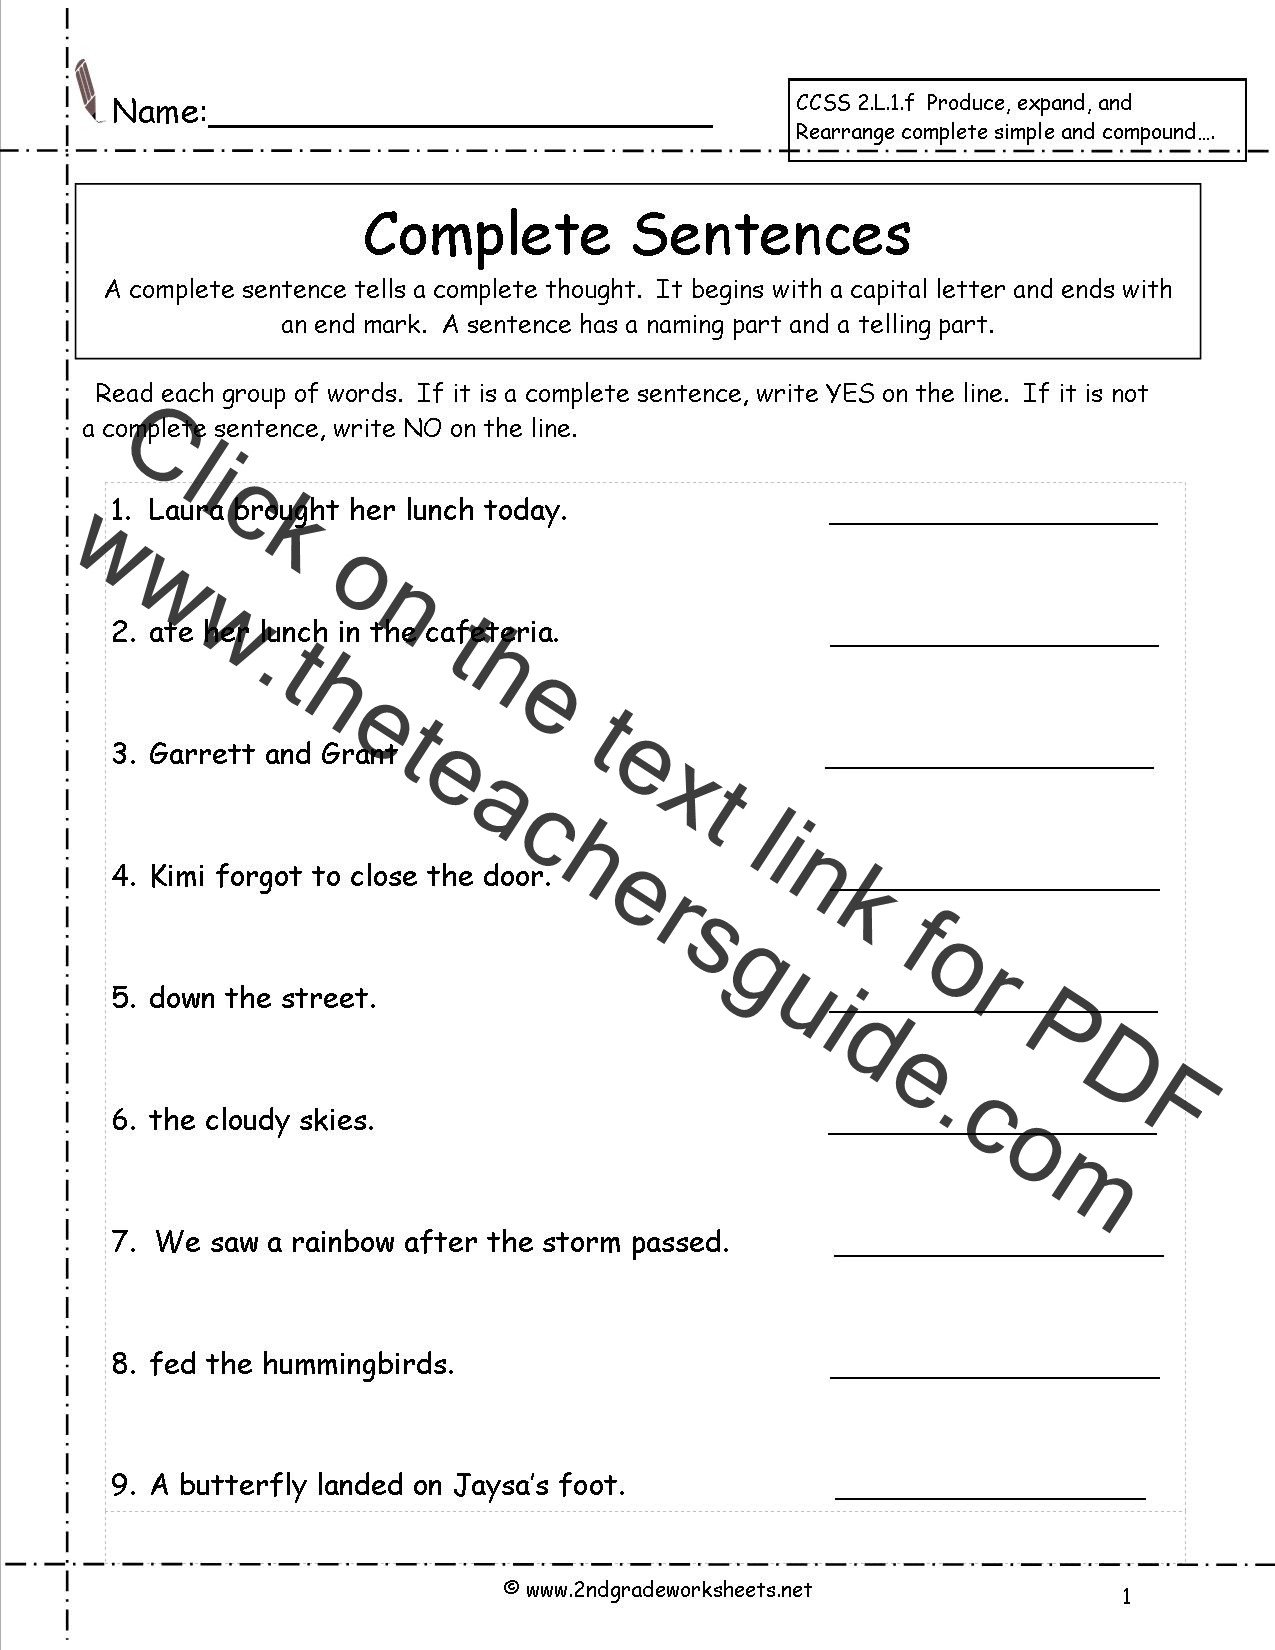 Free Subject and Predicate Worksheets Second Grade Sentences Worksheets Ccss 2 L 1 F Worksheets